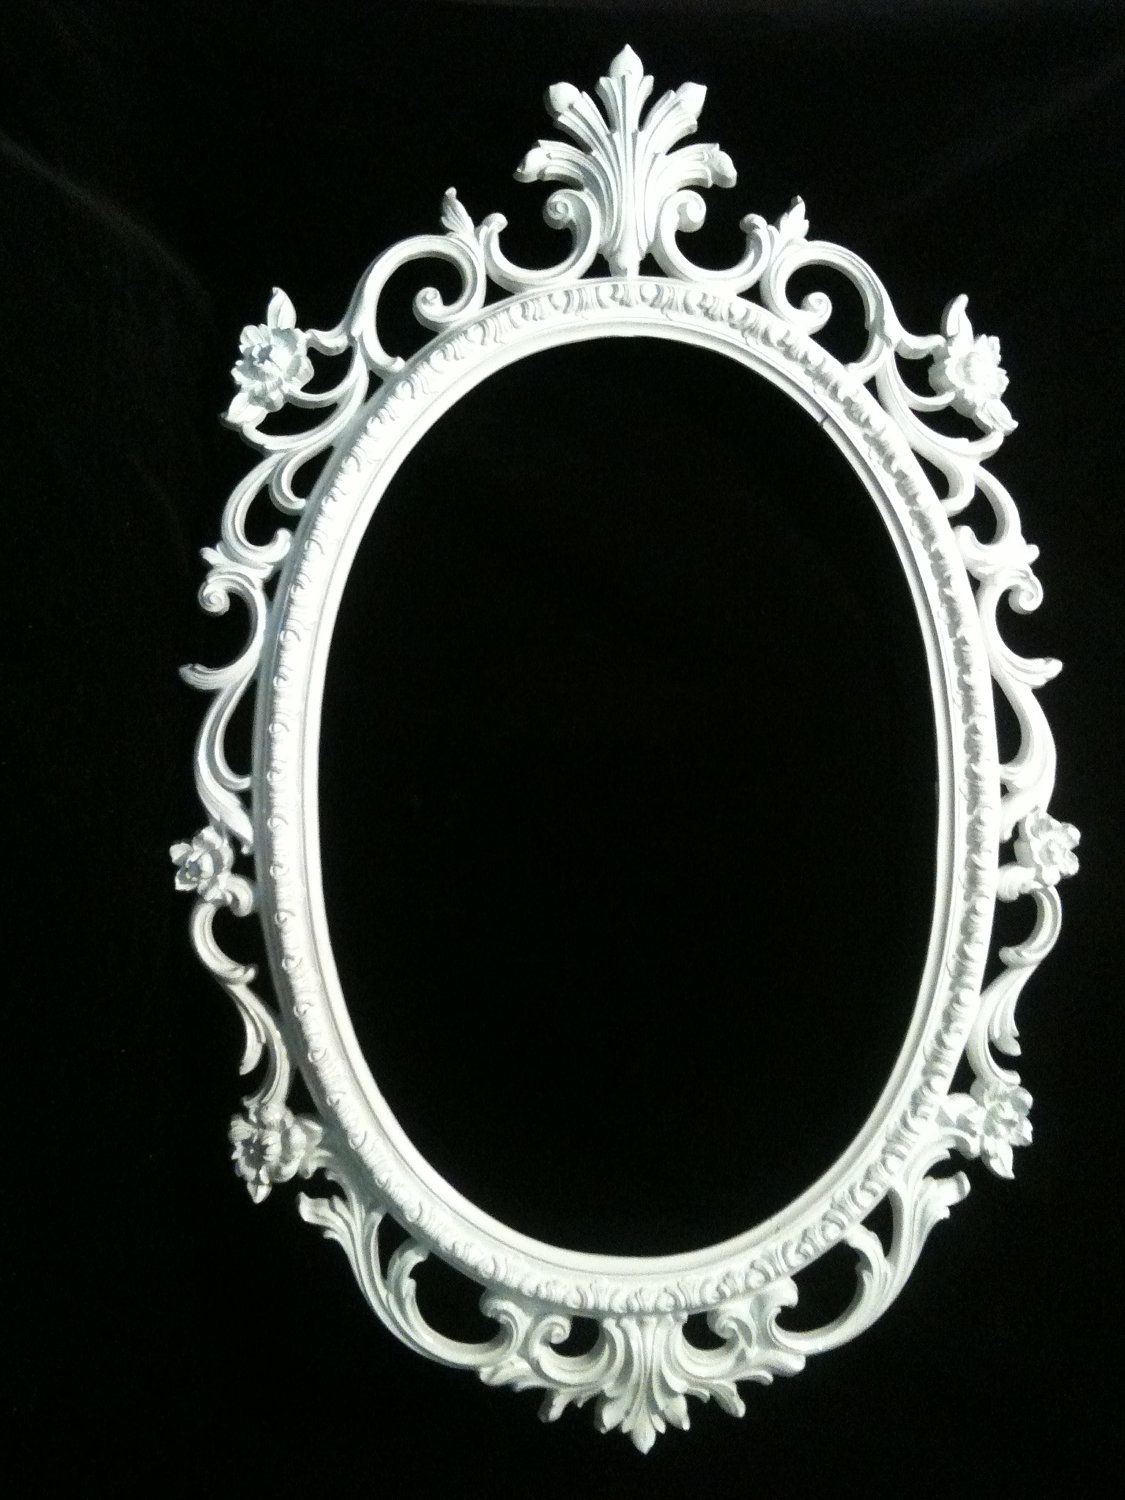 Gloss White Oval Picture Frame Mirror Shabby Chic Baroque Gothic ...